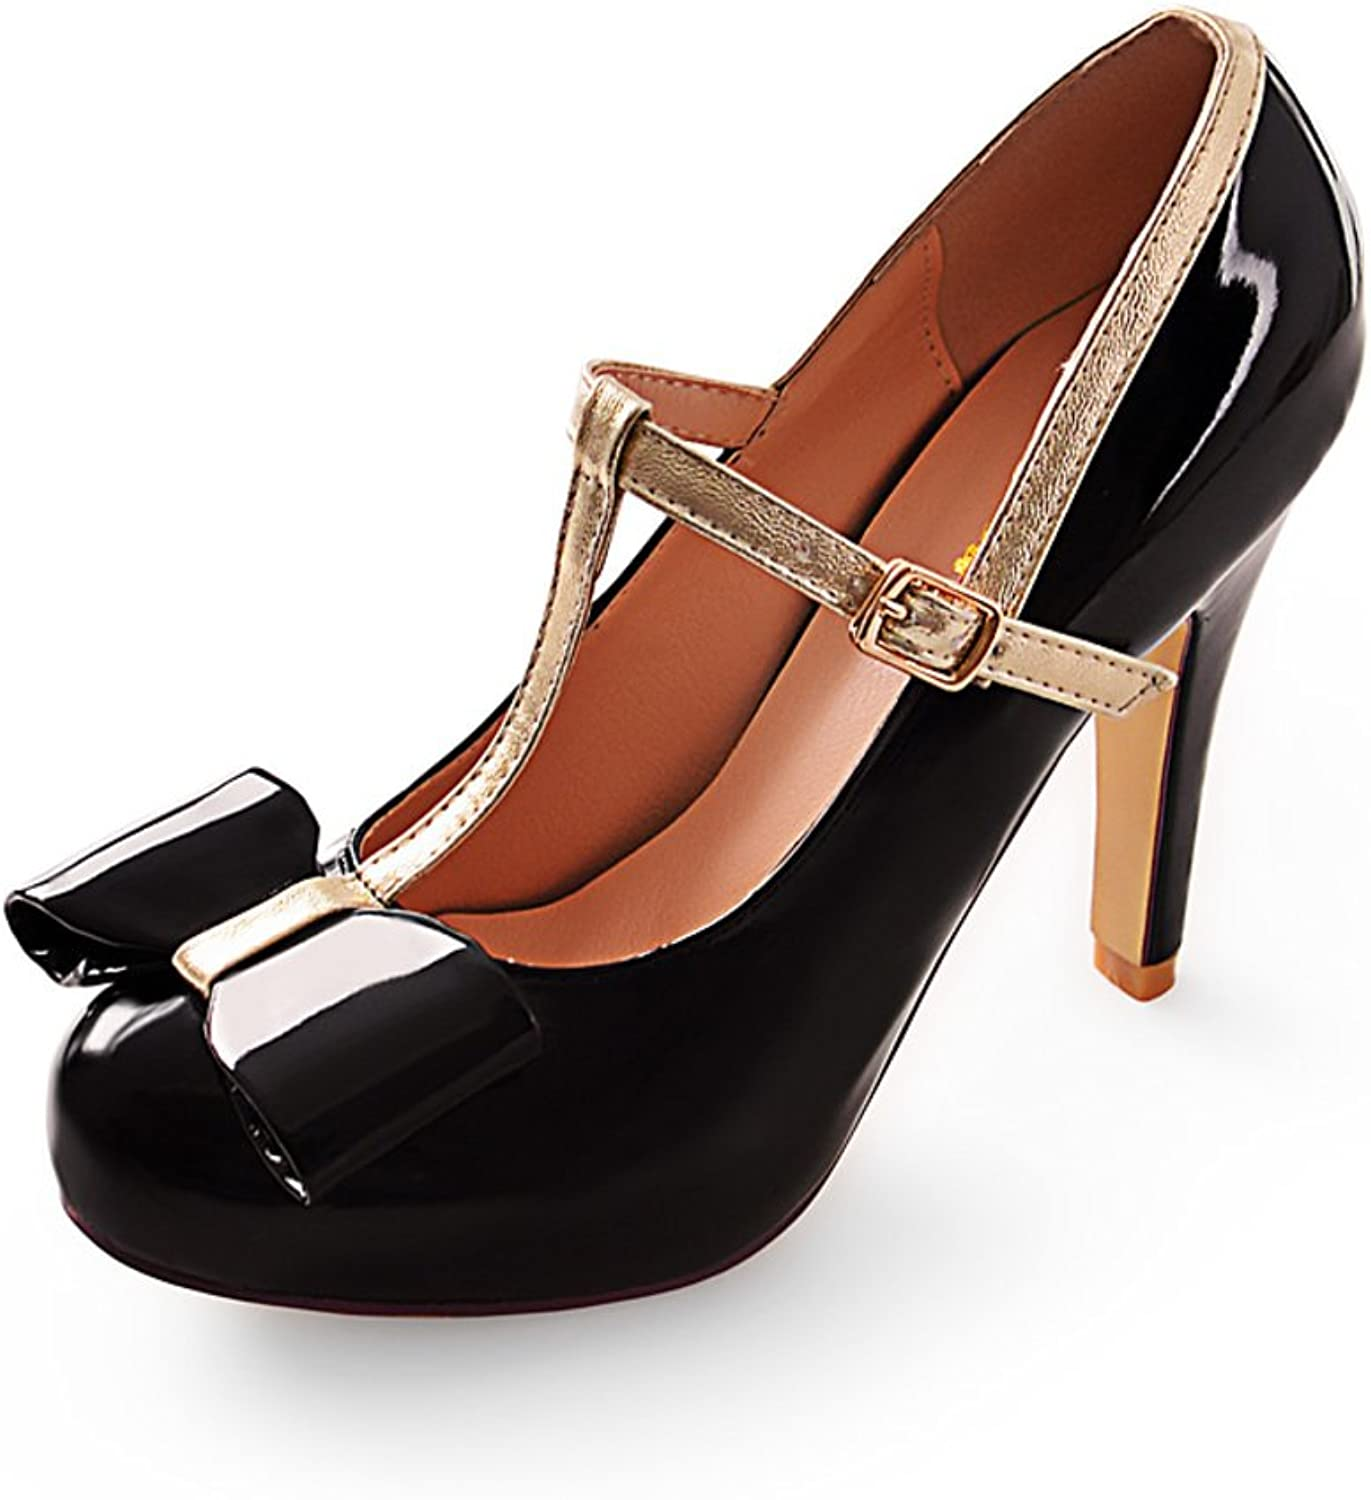 WLJSLLZYQ The Korean Version of The Sweet Bow shoes T Belt Buckle Women's shoes